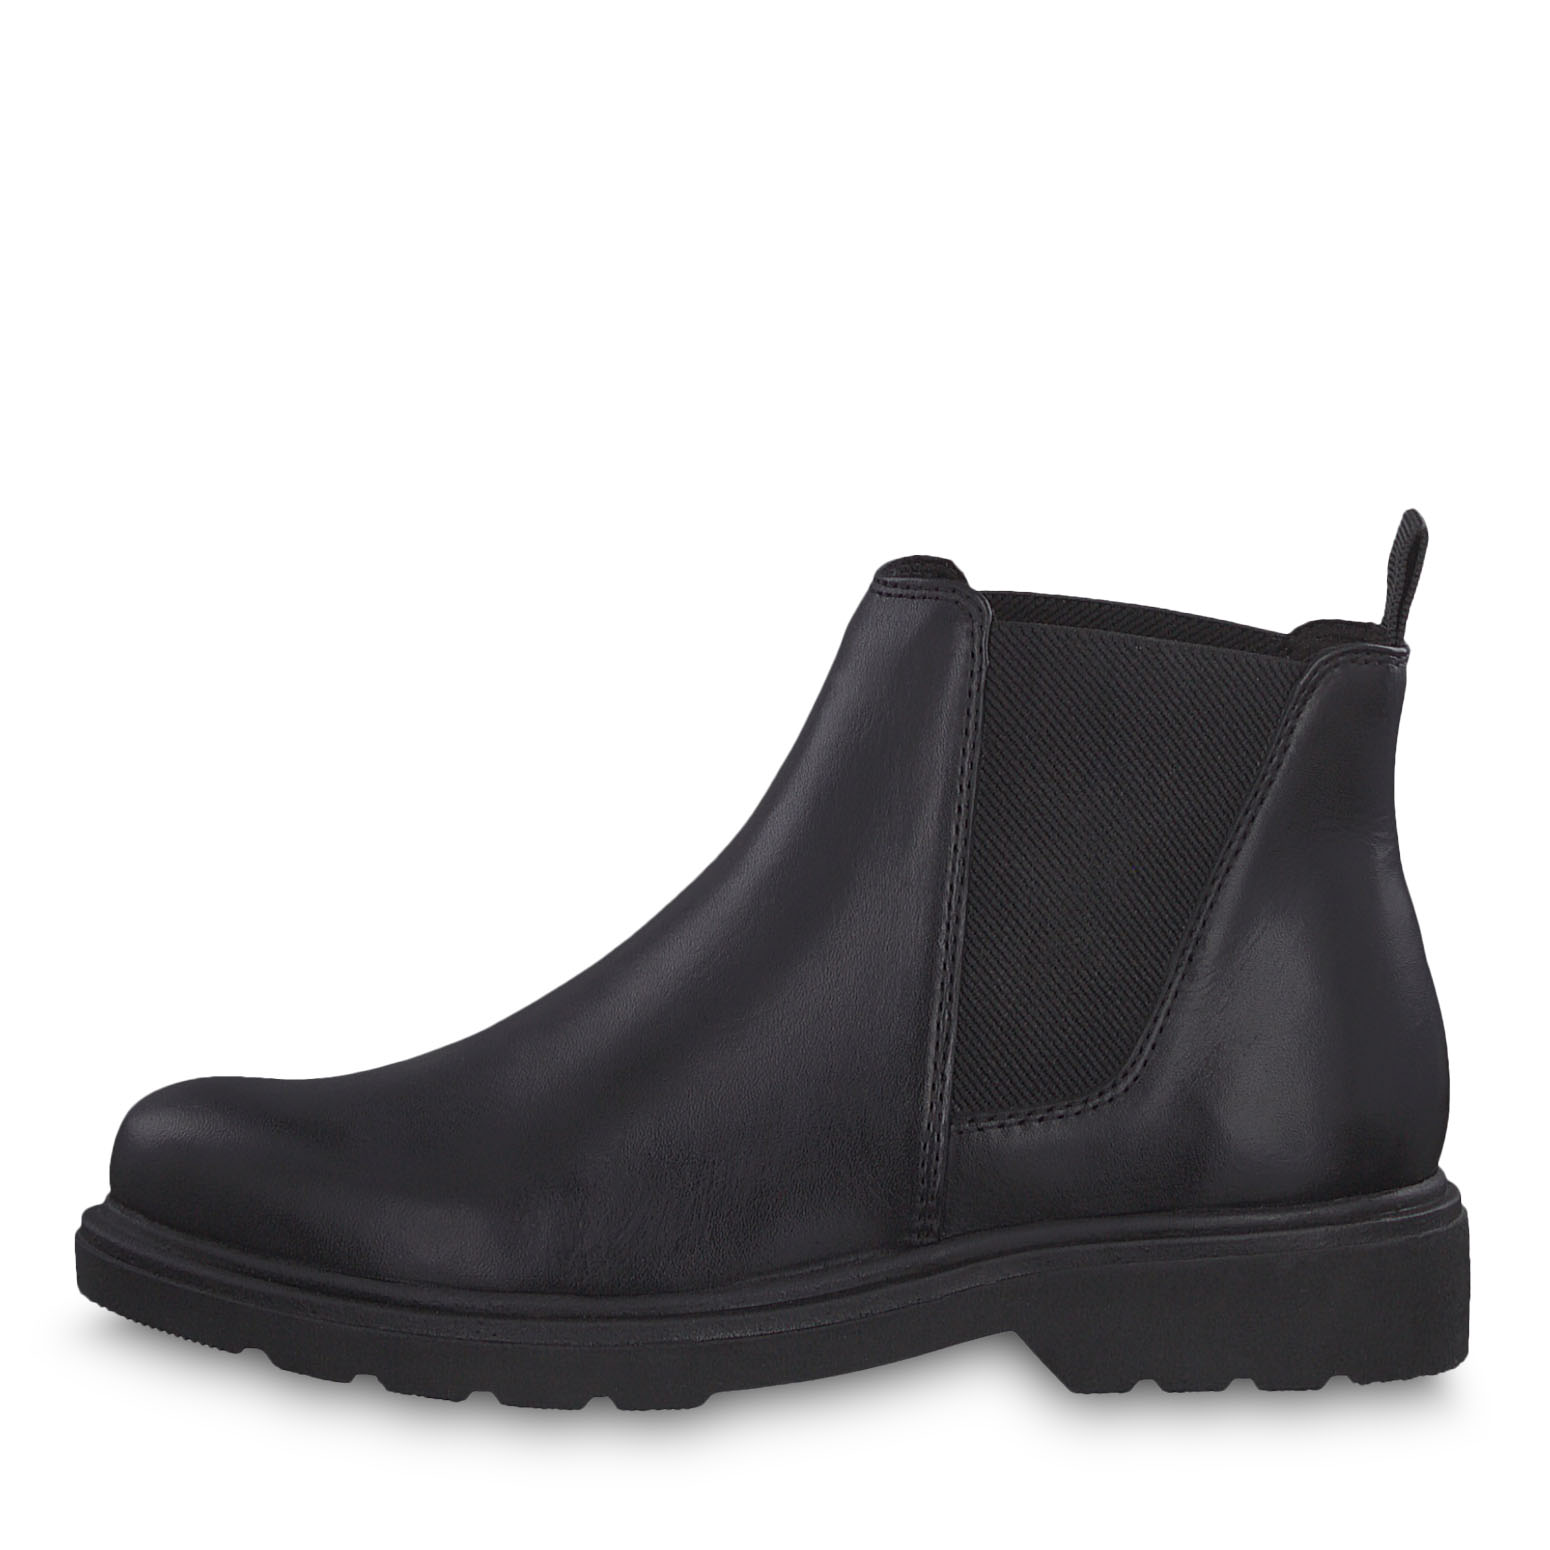 Chelsea boot - black, BLACK ANTIC, hi-res